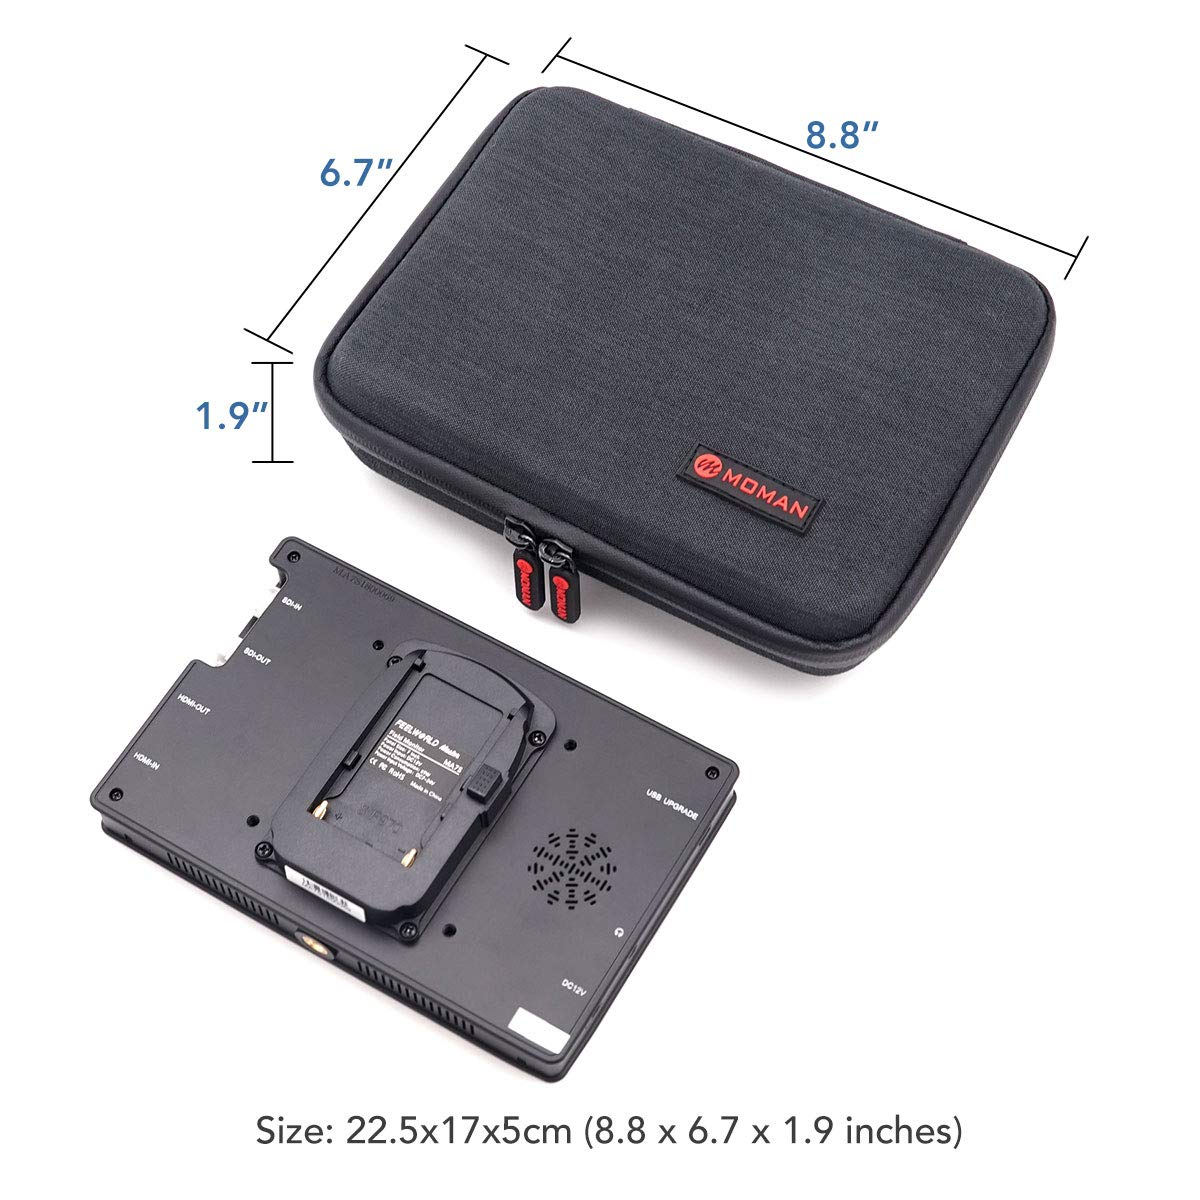 Moman Carrying Bag for 7 inch Camera Field Monitor Carrying Case for Feelworld FW703 T7 FW759 FW760 F7 FW759P FW74K A737 FH7 NW759 NW760 NW74k Lilliput A7S and other 7 Inch DSLR Monitors